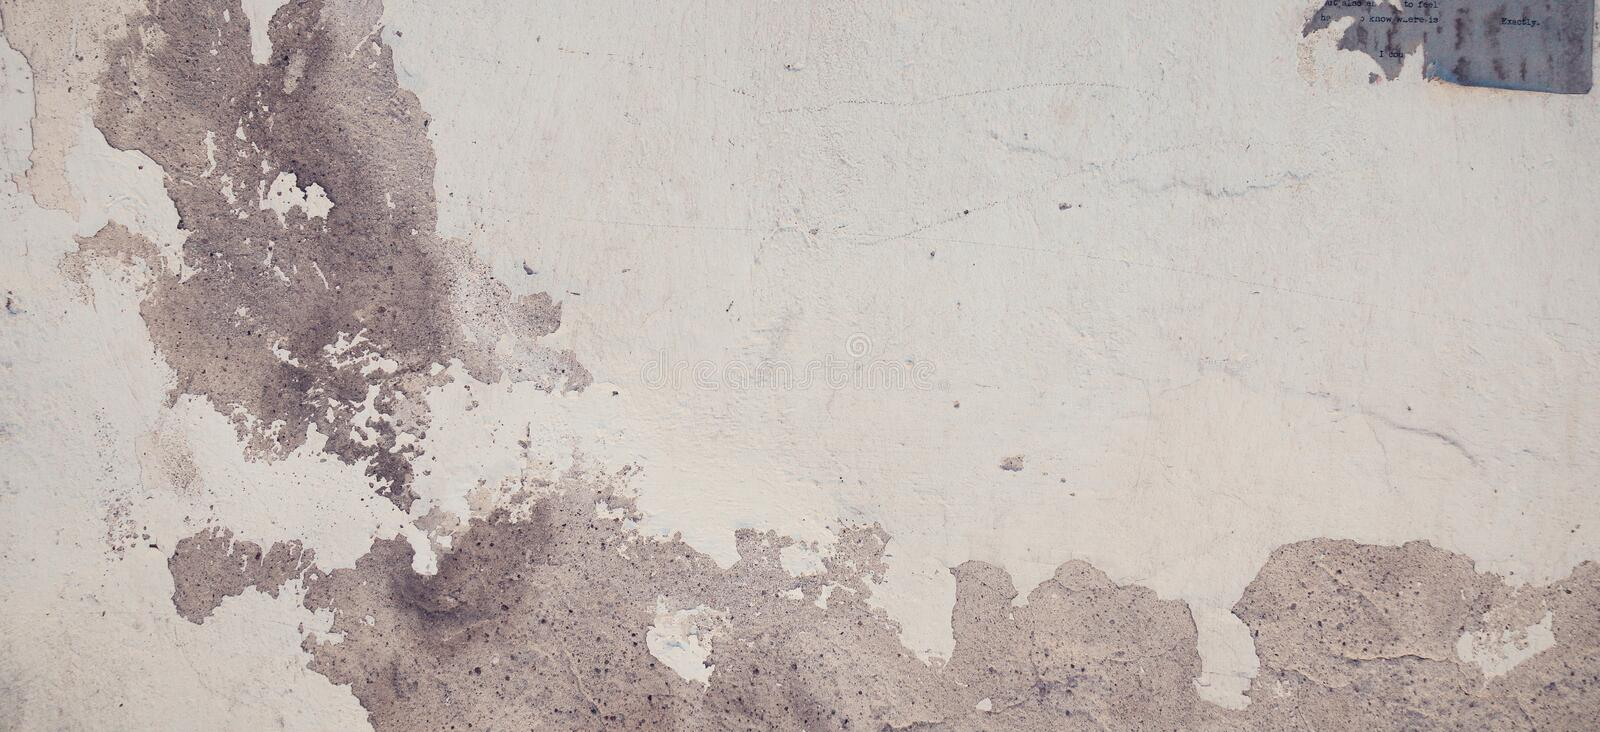 Old grungy brick and stone wall with damaged plaster banner background texture. royalty free stock images